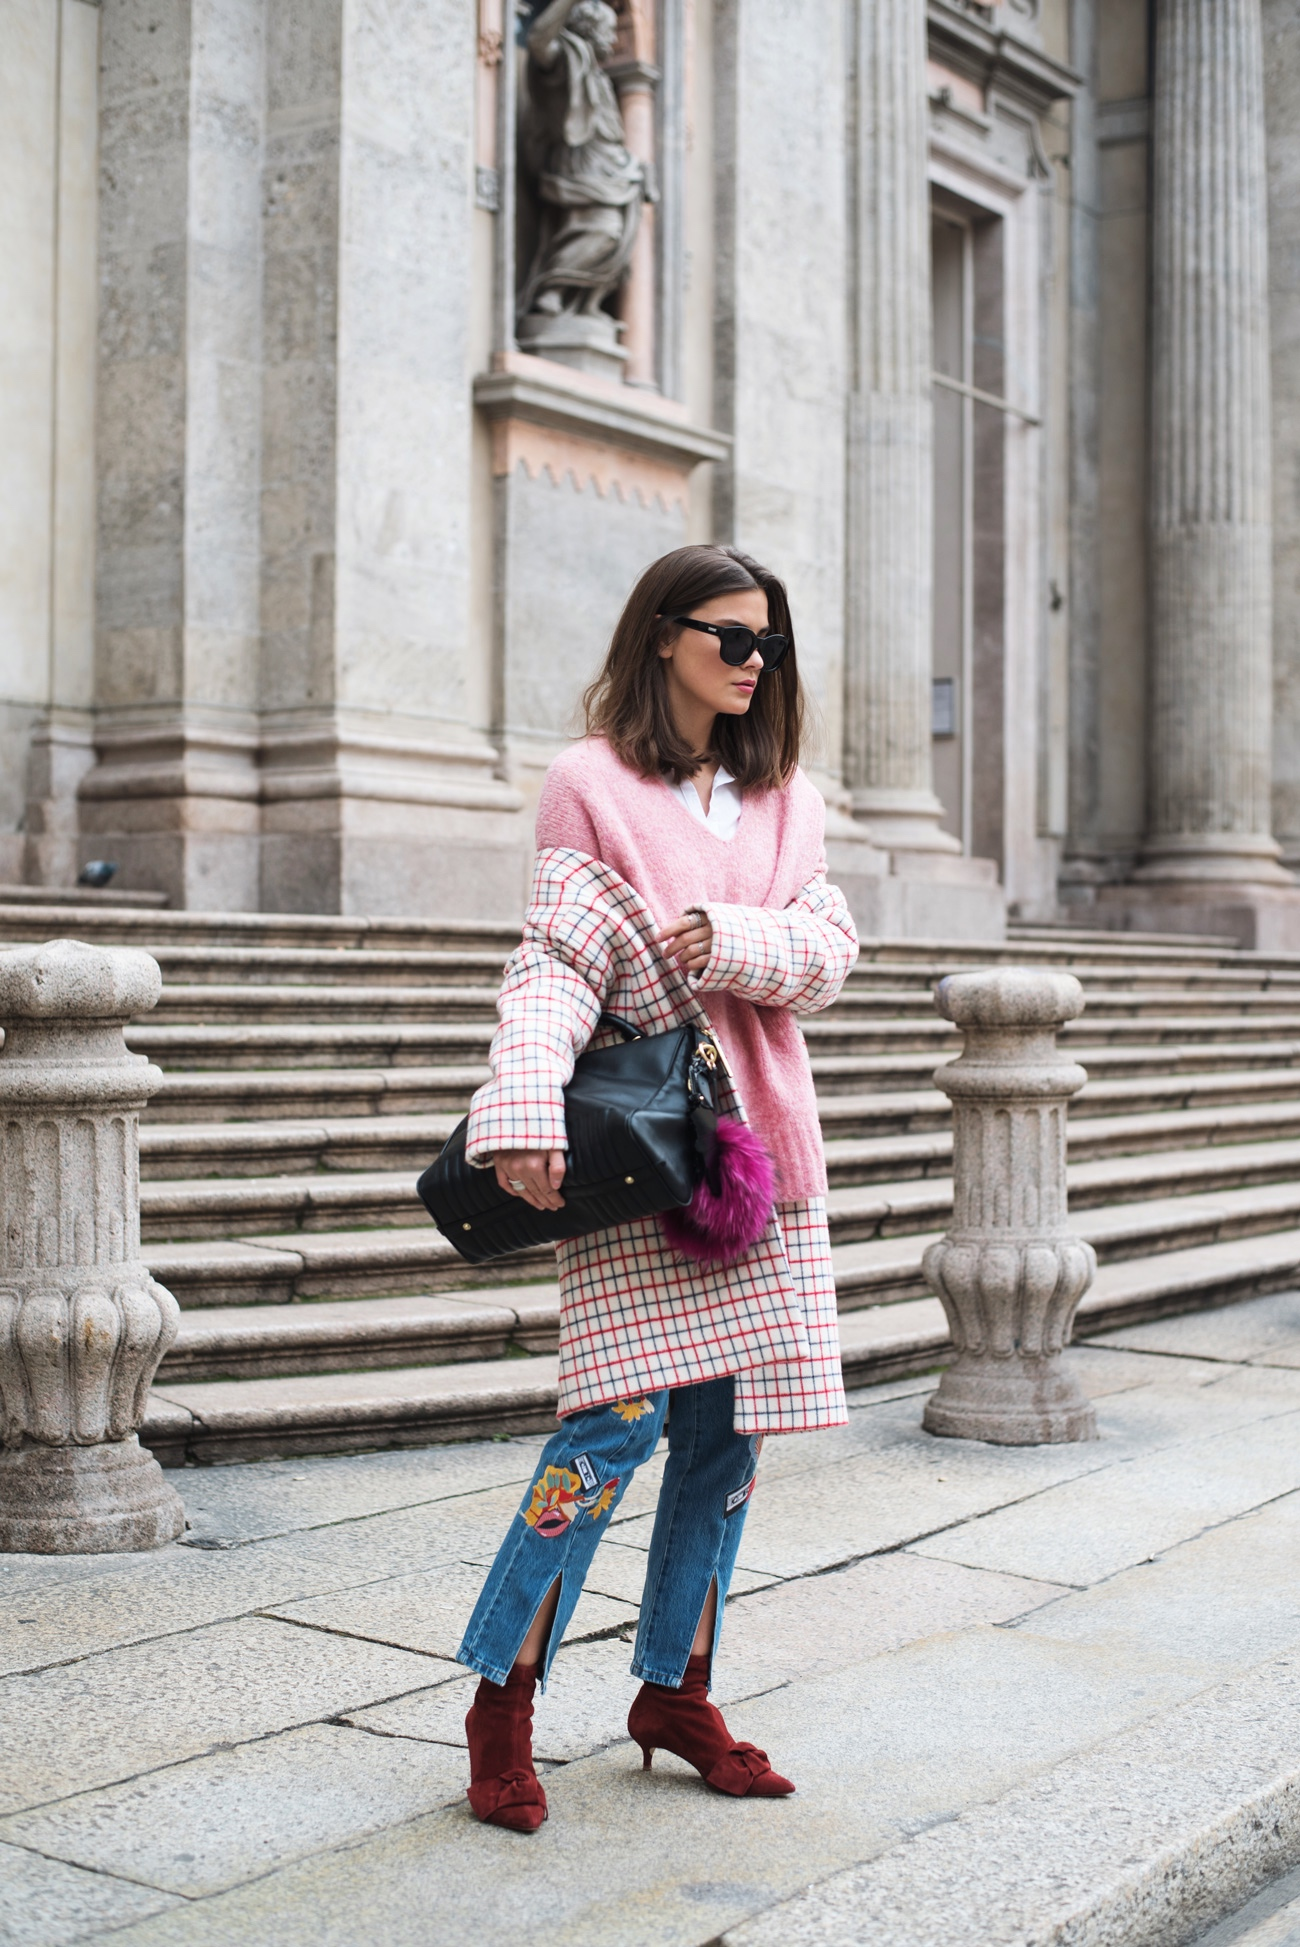 jacket-off-shoulder-trend-streetstyle-cold-shoulder-style-fashiioncarpet